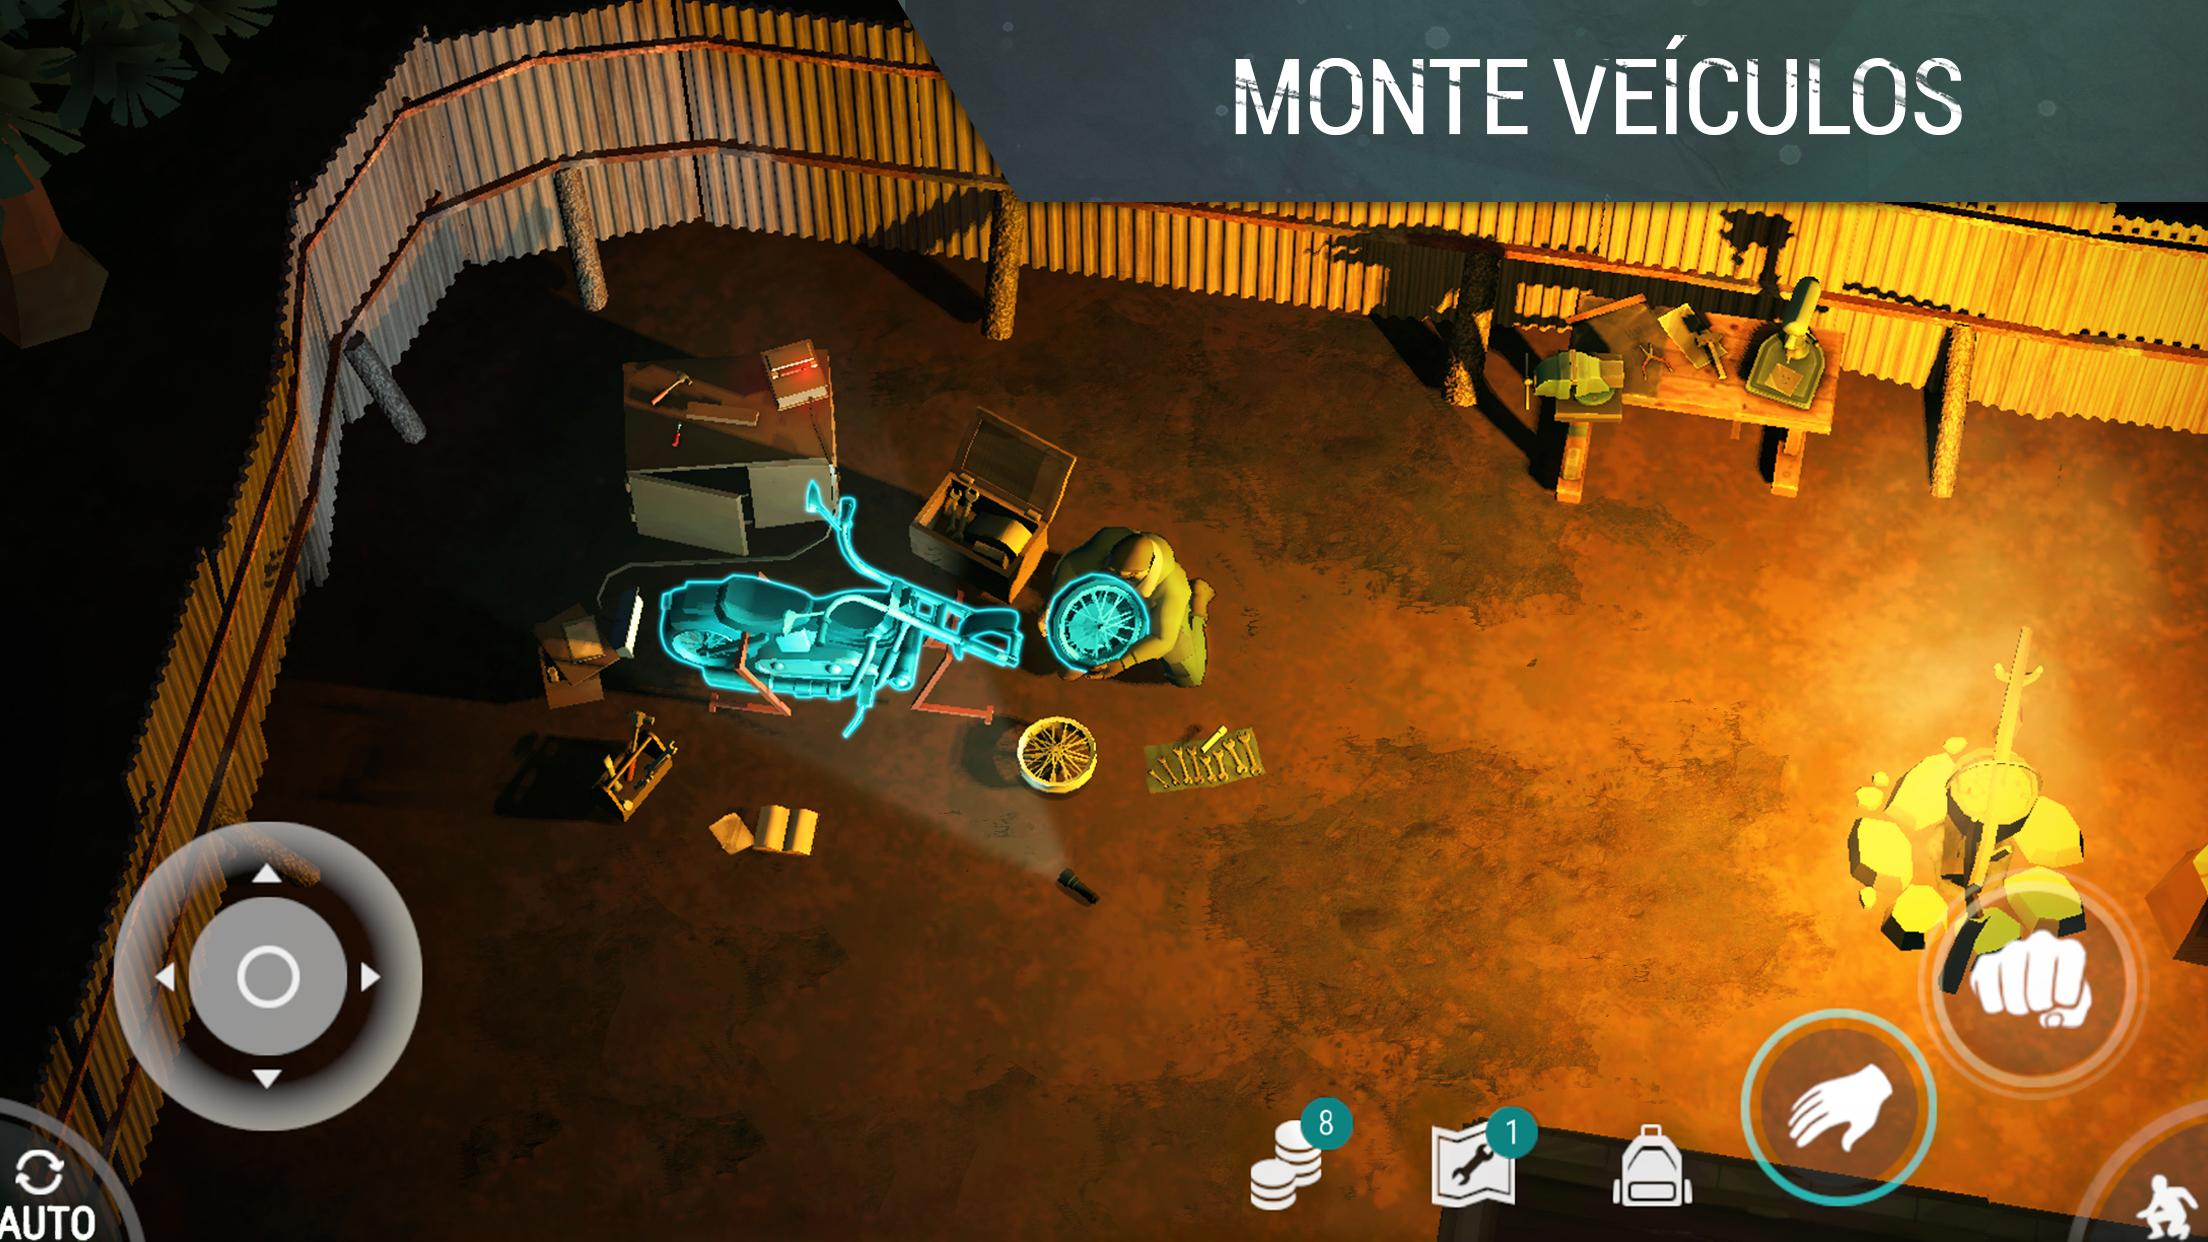 Download - Last Day on Earth Survival v1.17.10 Apk Mod [Mod Menu / Craft Infinito] - Winew